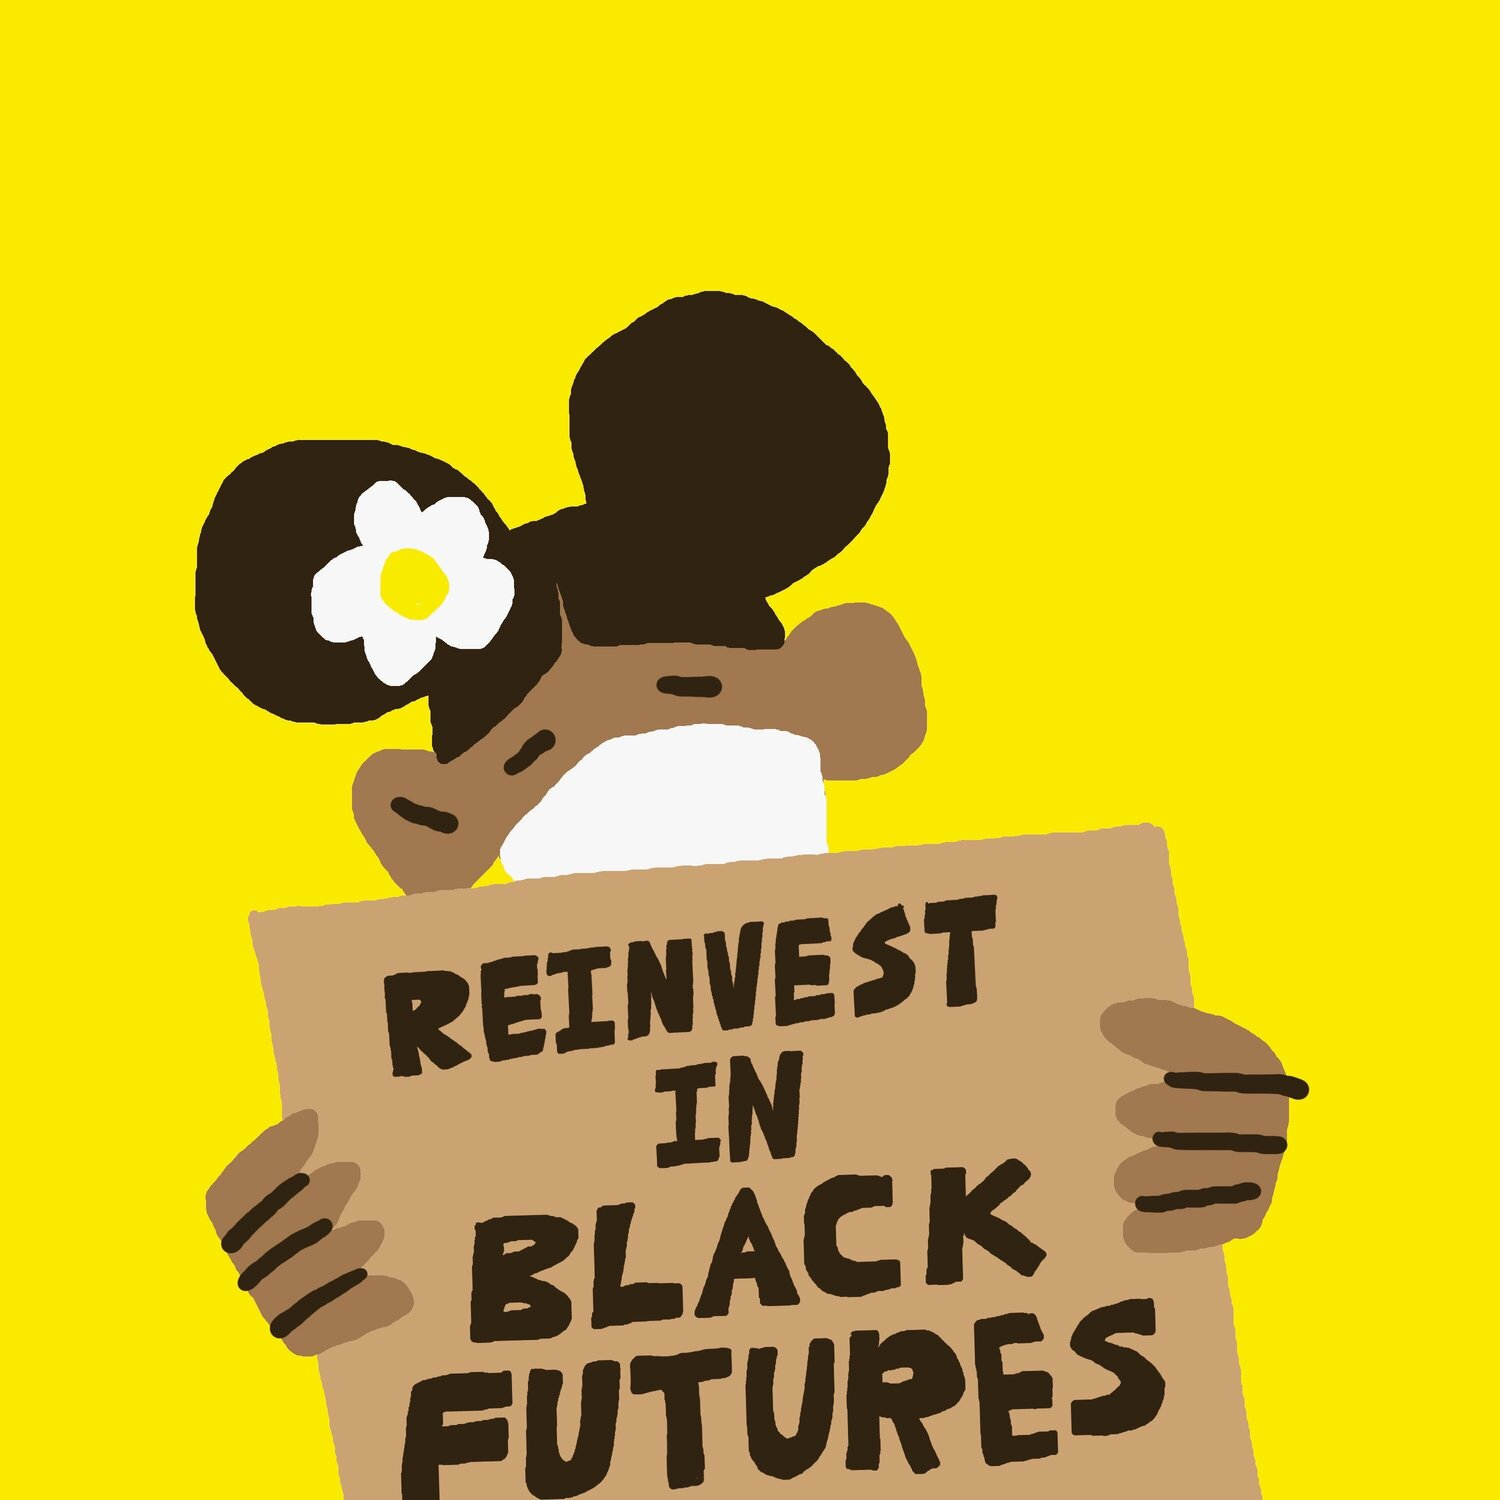 PAALF reinvest into black futures